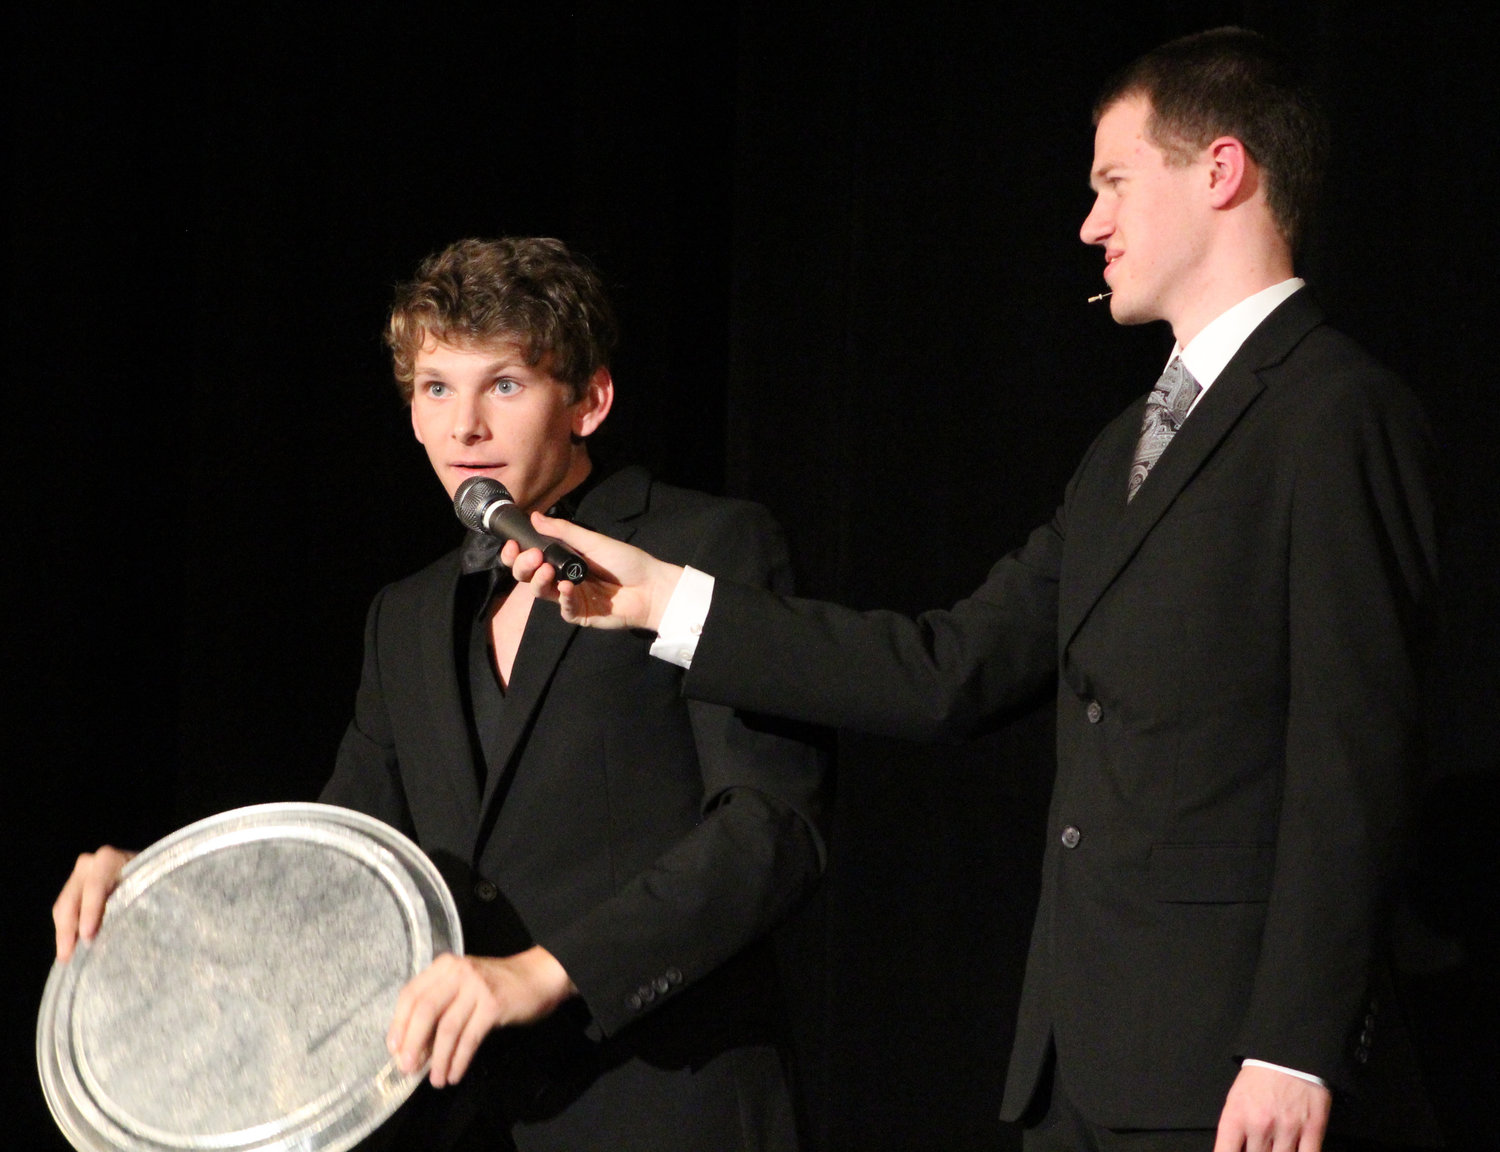 Ben Knisely discusses whether the Earth is flat with emcee Tim Nevil during Mr. Middletown on March 29.